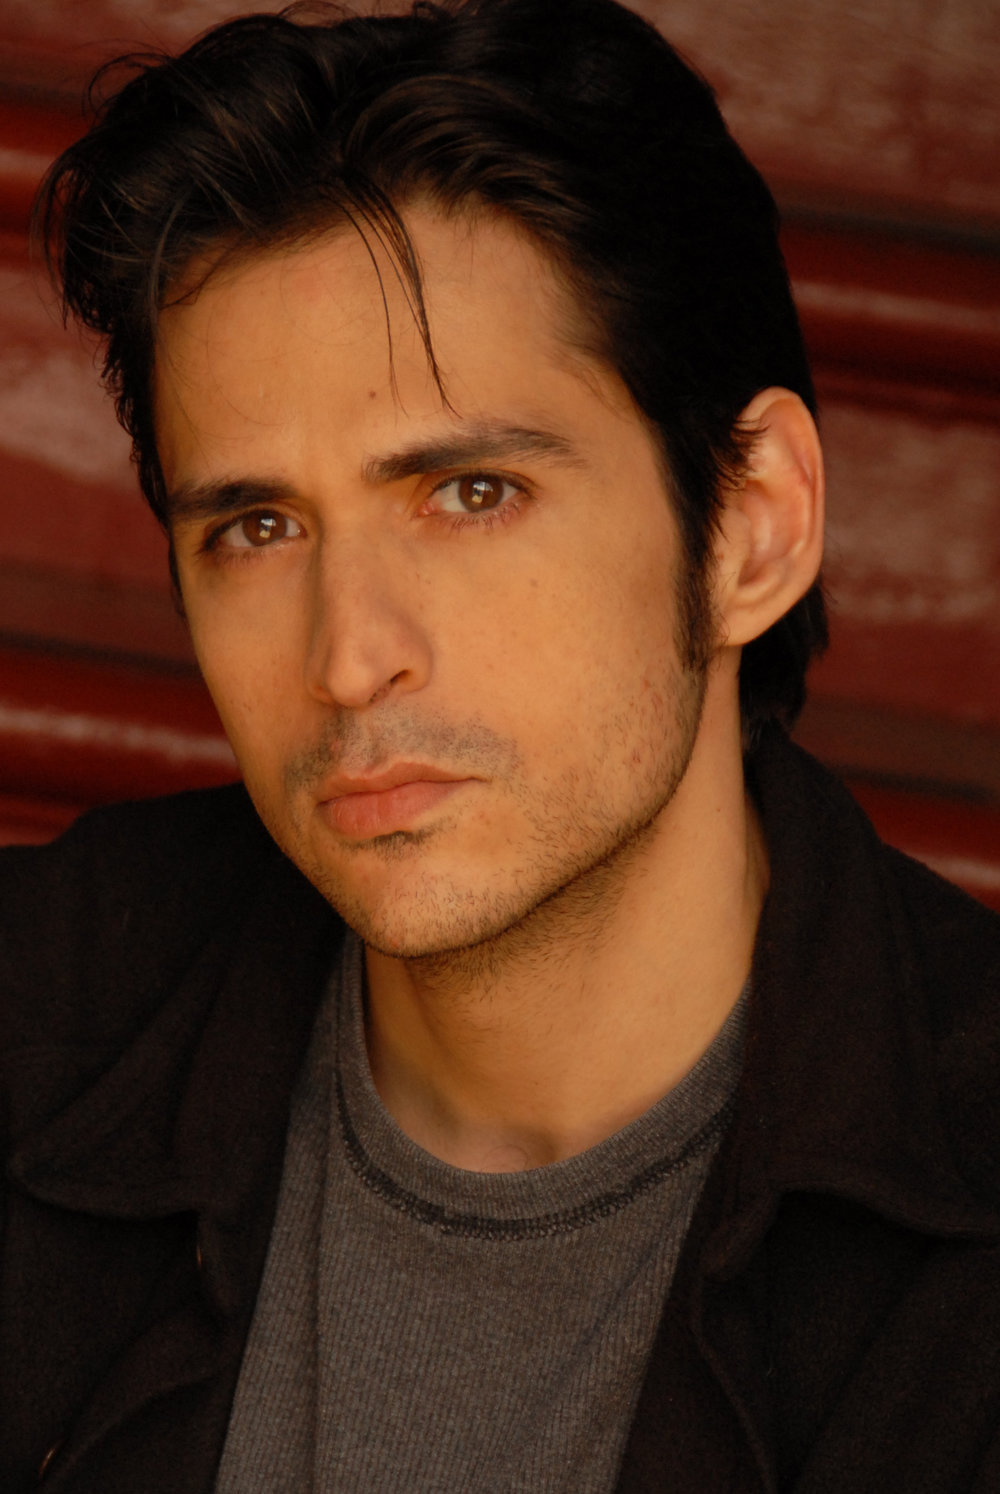 Mark Meer - Mark Meer stars as the voice of Commander Shepard, Blasto, Niftu Cal, the Vorcha, and more in Bioware's Mass Effect Trilogy. Other voice work includes Hinterland Studio's The Long Dark, Bioware's Dragon Age series, Jade Empire, and the original Baldur's Gate games, plus the mad drow sorcerer Baeloth Barrityl, Sun Soul monk Rasaad yn Bashir,